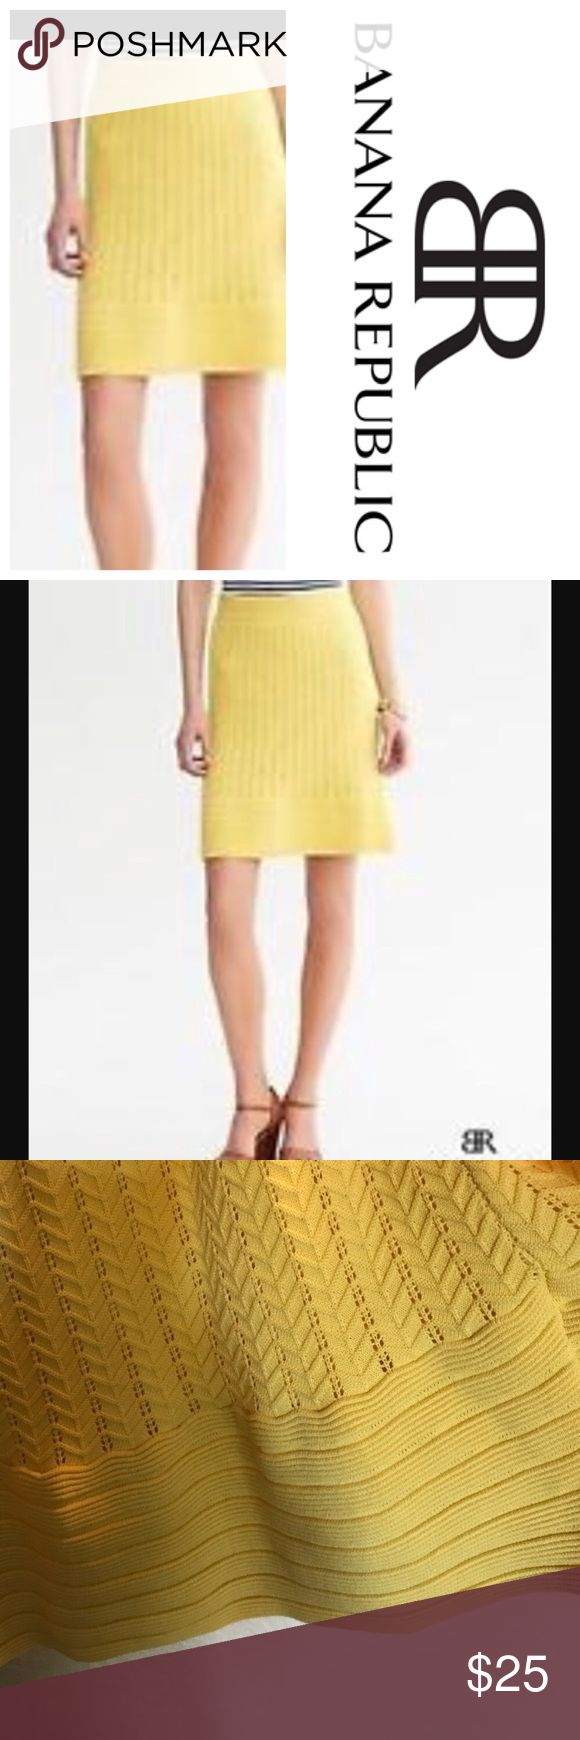 "Banana Republic 🍋 Textured Flare Skirt sz Large Brand: Banana Republic   Size: Large   Color: Yellow 🍋  Style: Monogram Textured Sweater Skirt. Lemon Drop Yellow color with flared hem. Pull on style with elastic waist.   Materials: Viscose & Polyester. Fully lined.   Measurements:  17"" waist unstretched  25"" long.   🍍🍍🍍 EUC. Bundle & Save with my other listings Banana Republic Skirts Midi"